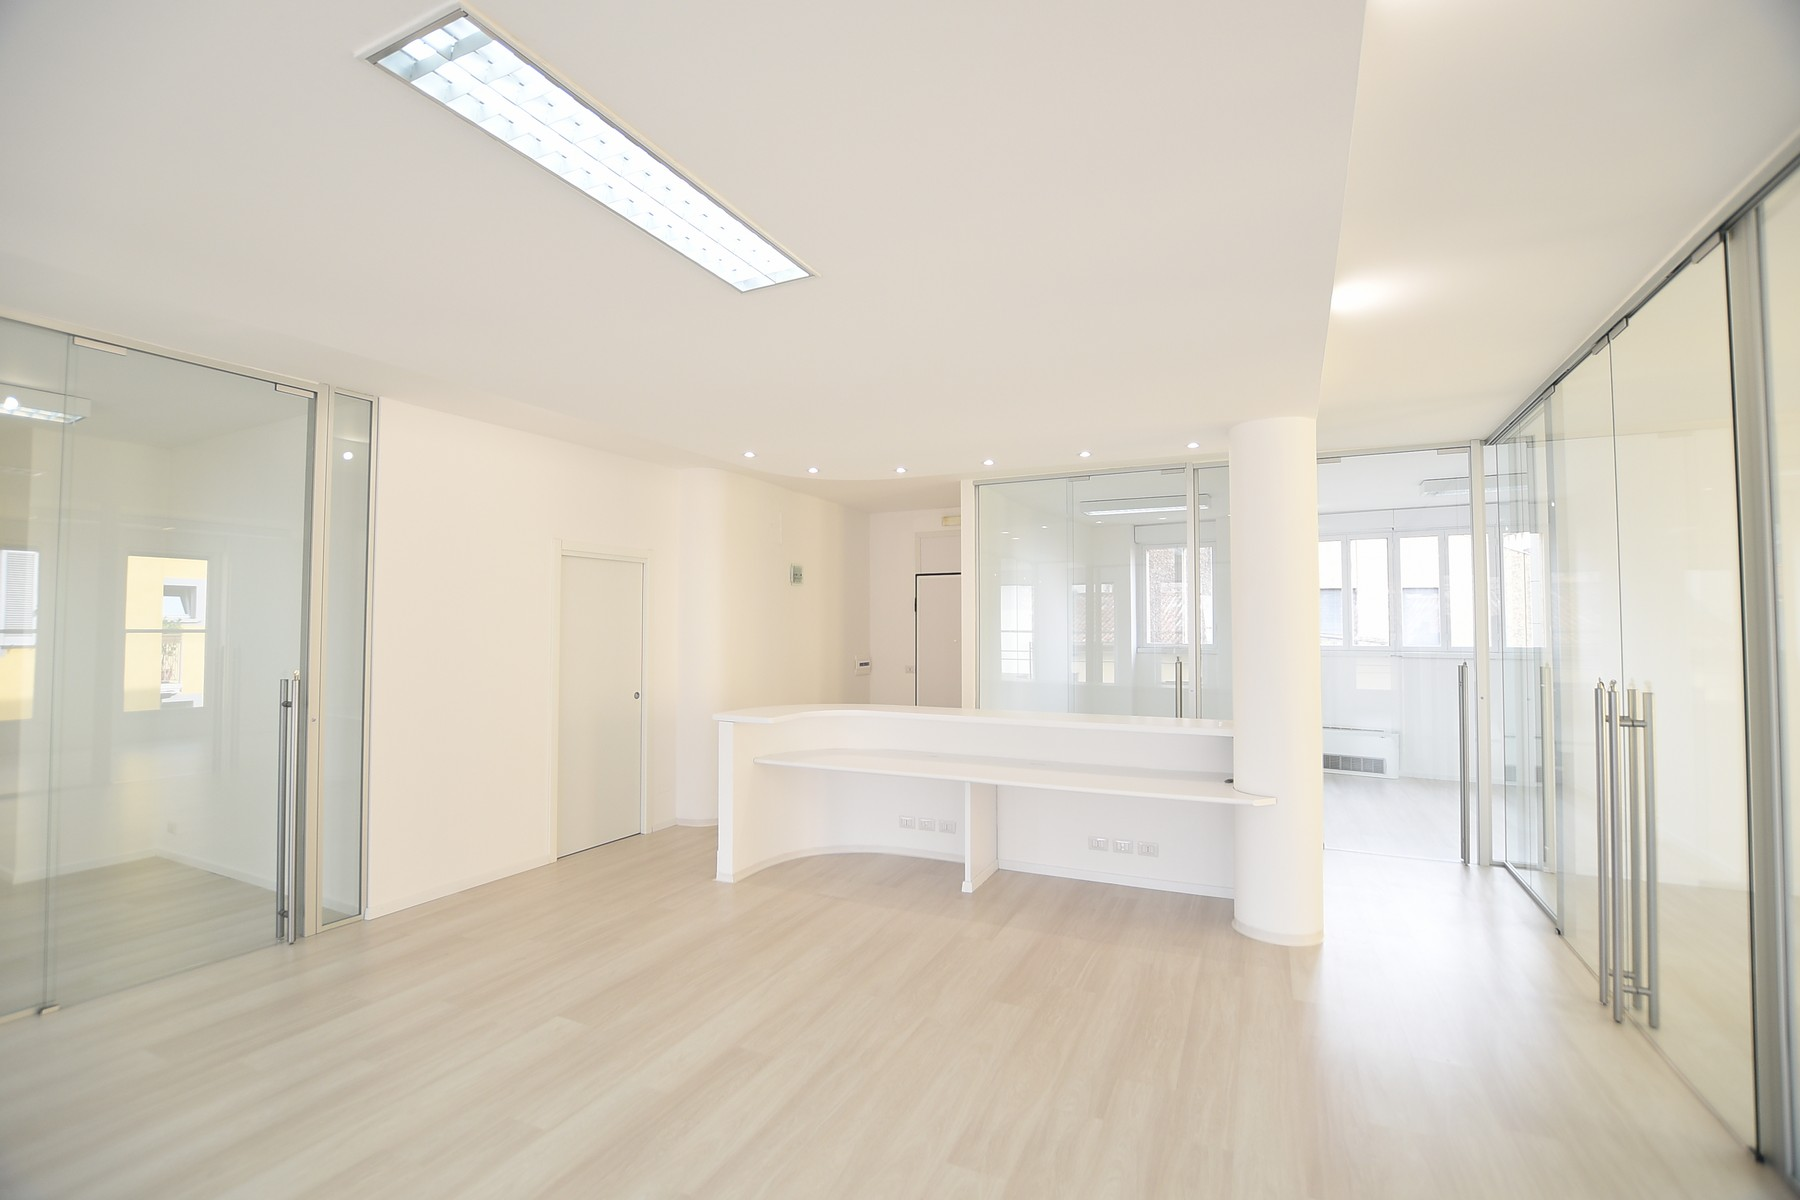 Apartamento por un Venta en Prestigious office with high quality finishes via Milano Como, Como 22100 Italia